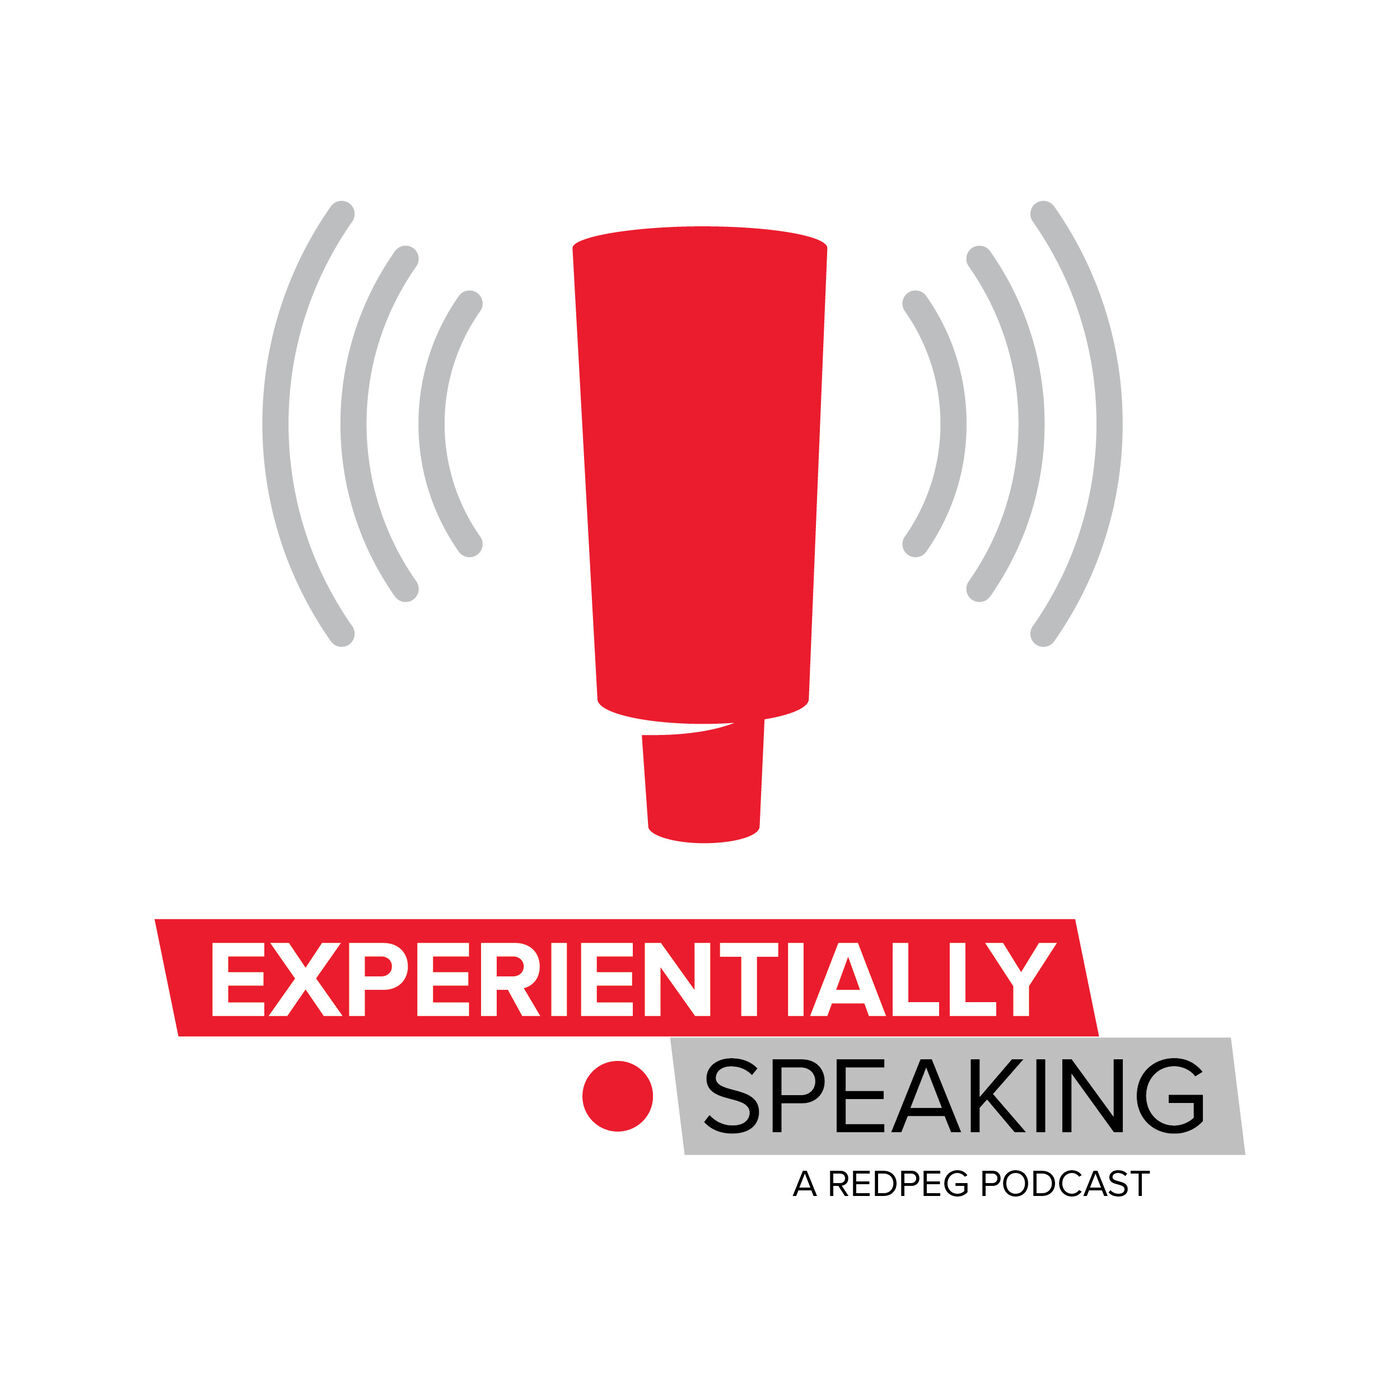 Introducing Experientially Speaking